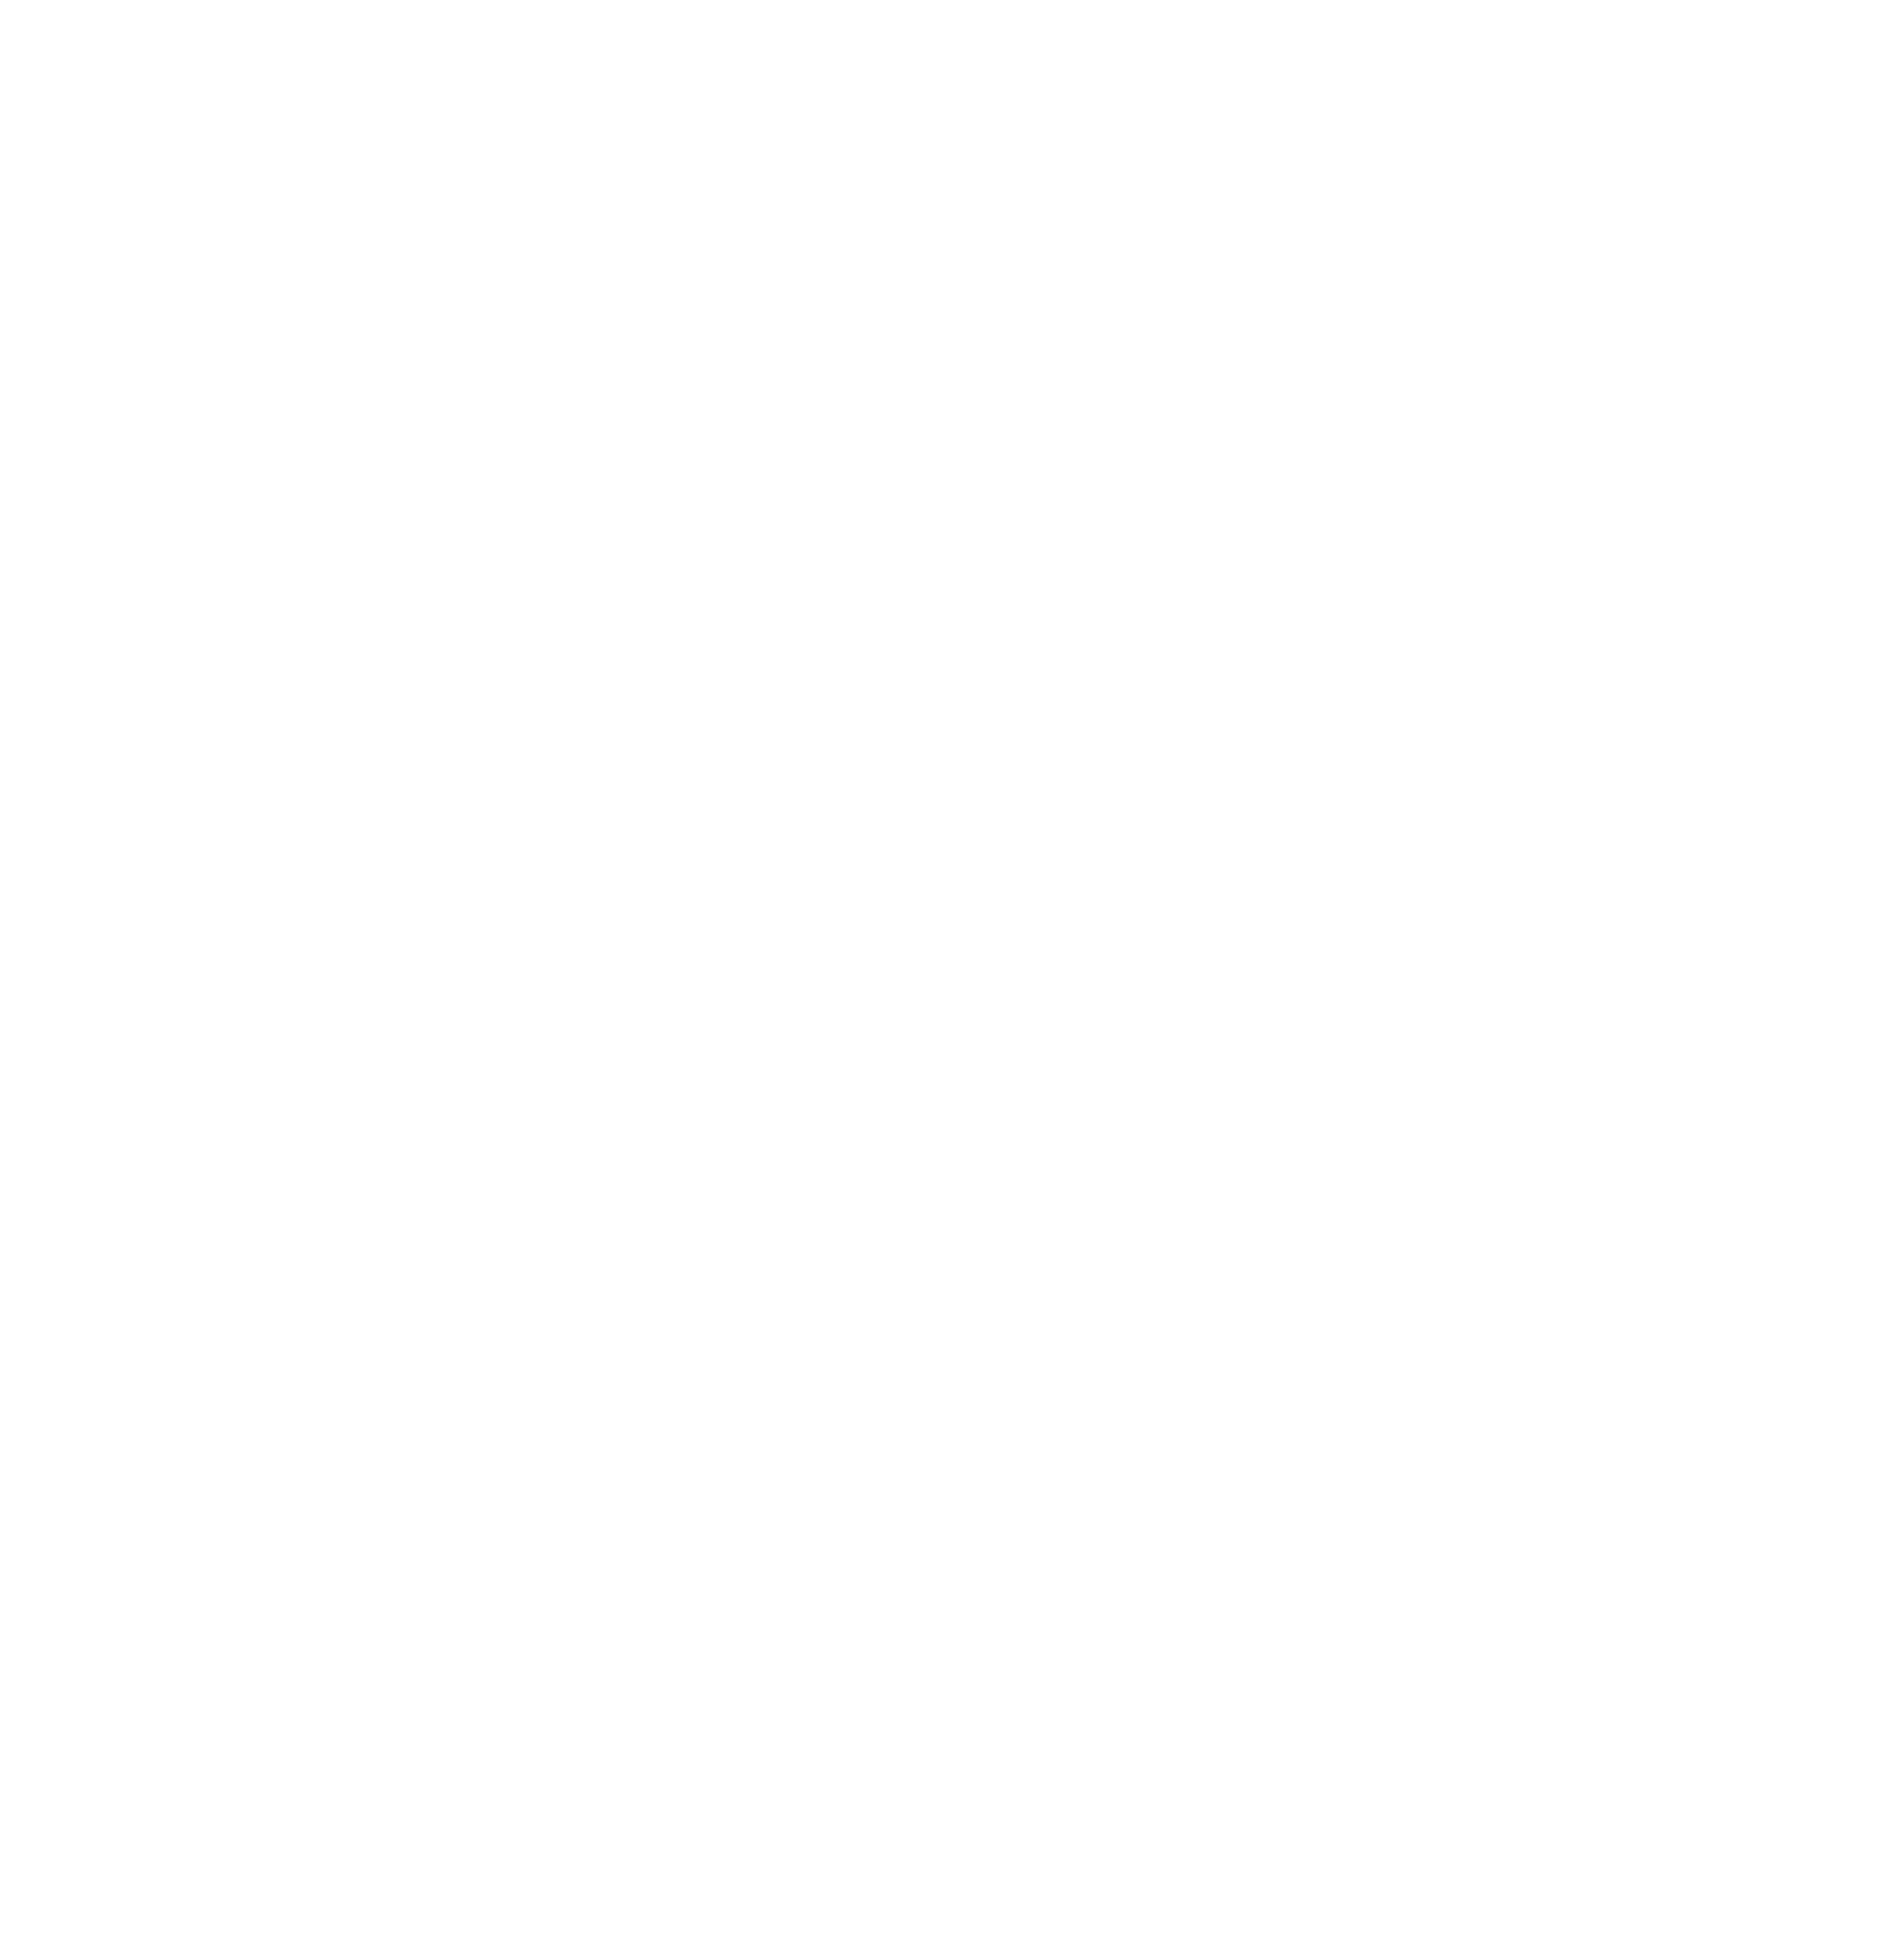 Roadside Software & Adventures